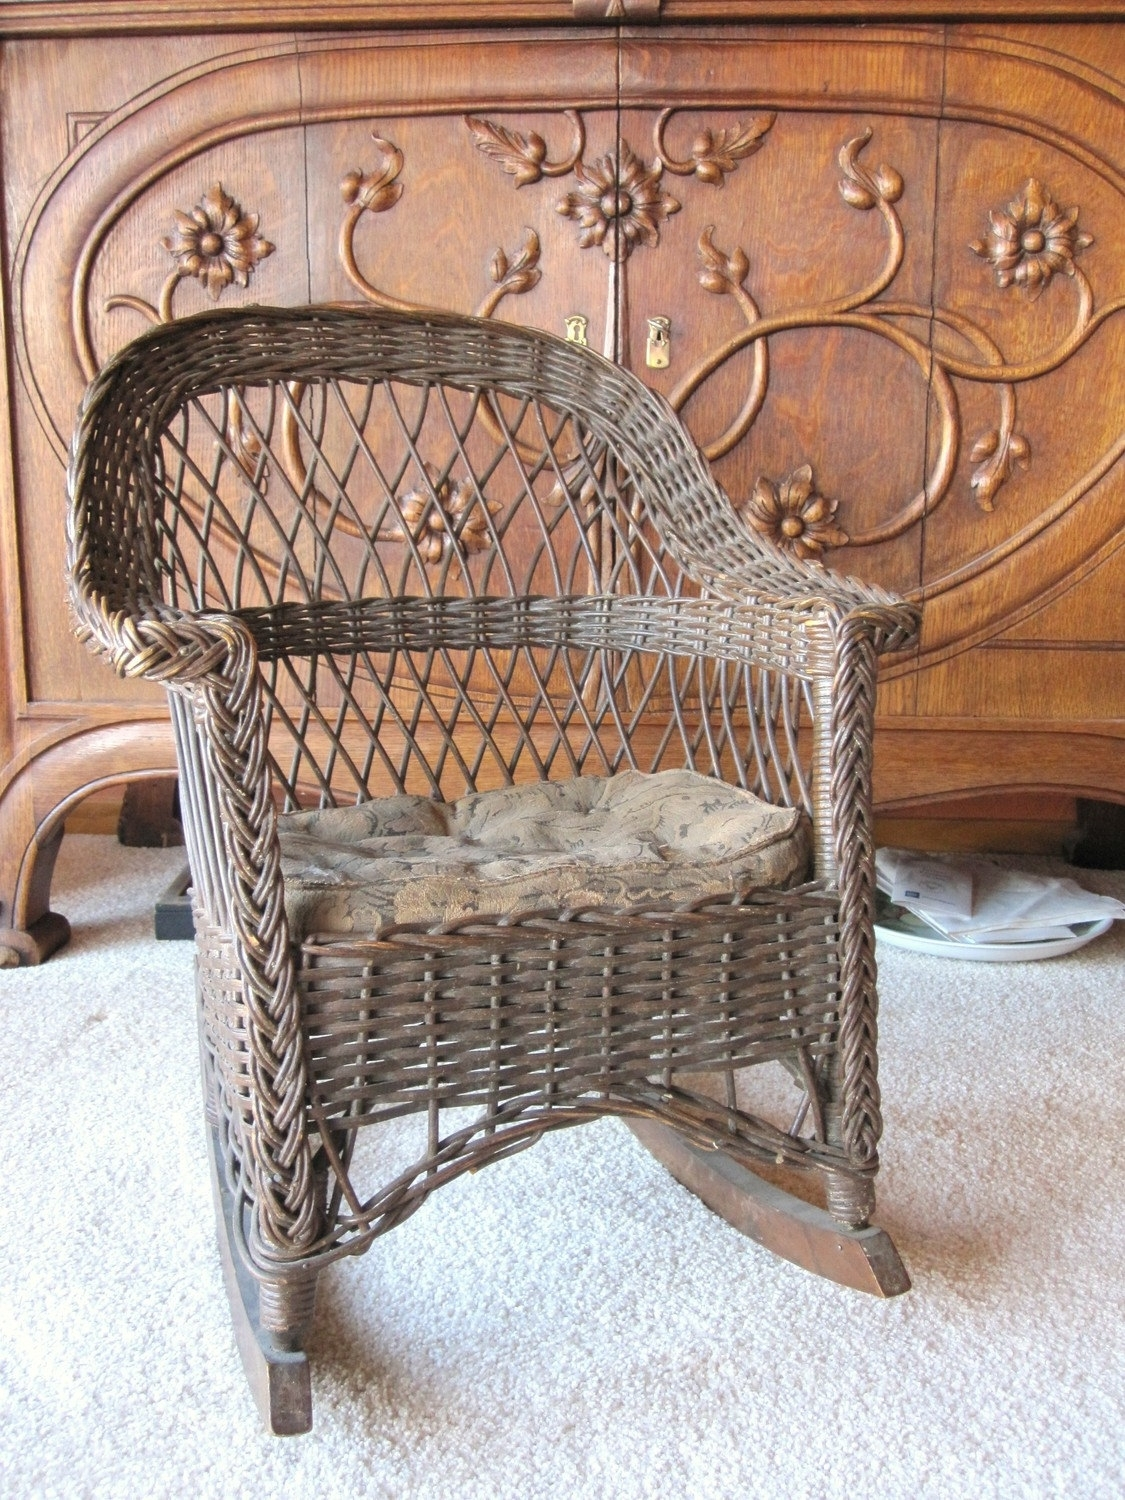 Popular Photo of Antique Wicker Rocking Chairs